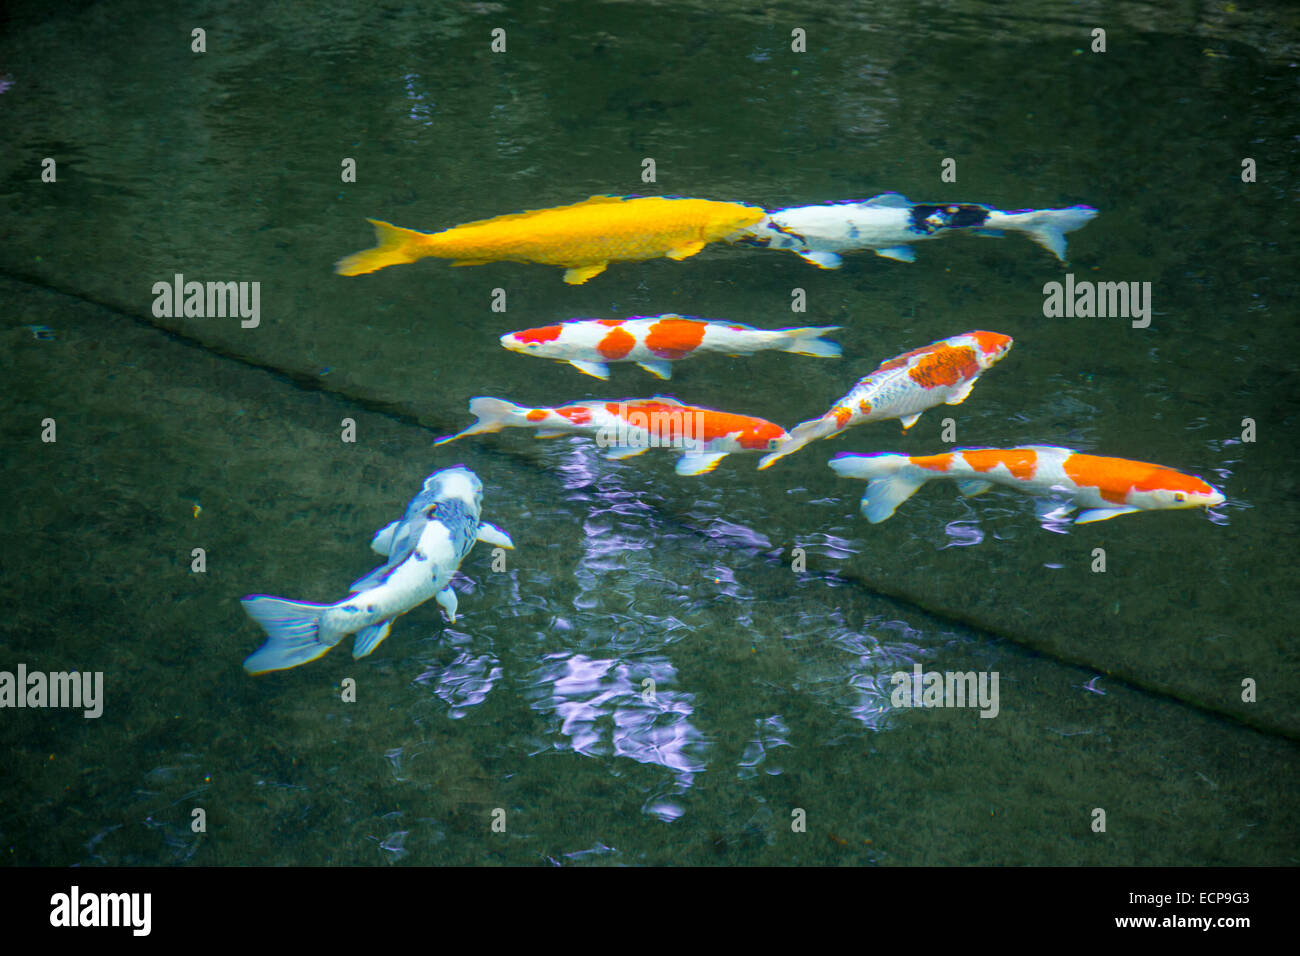 Koi carp cyprinus carpio in a pond aquarium fish stock for Koi fish aquarium